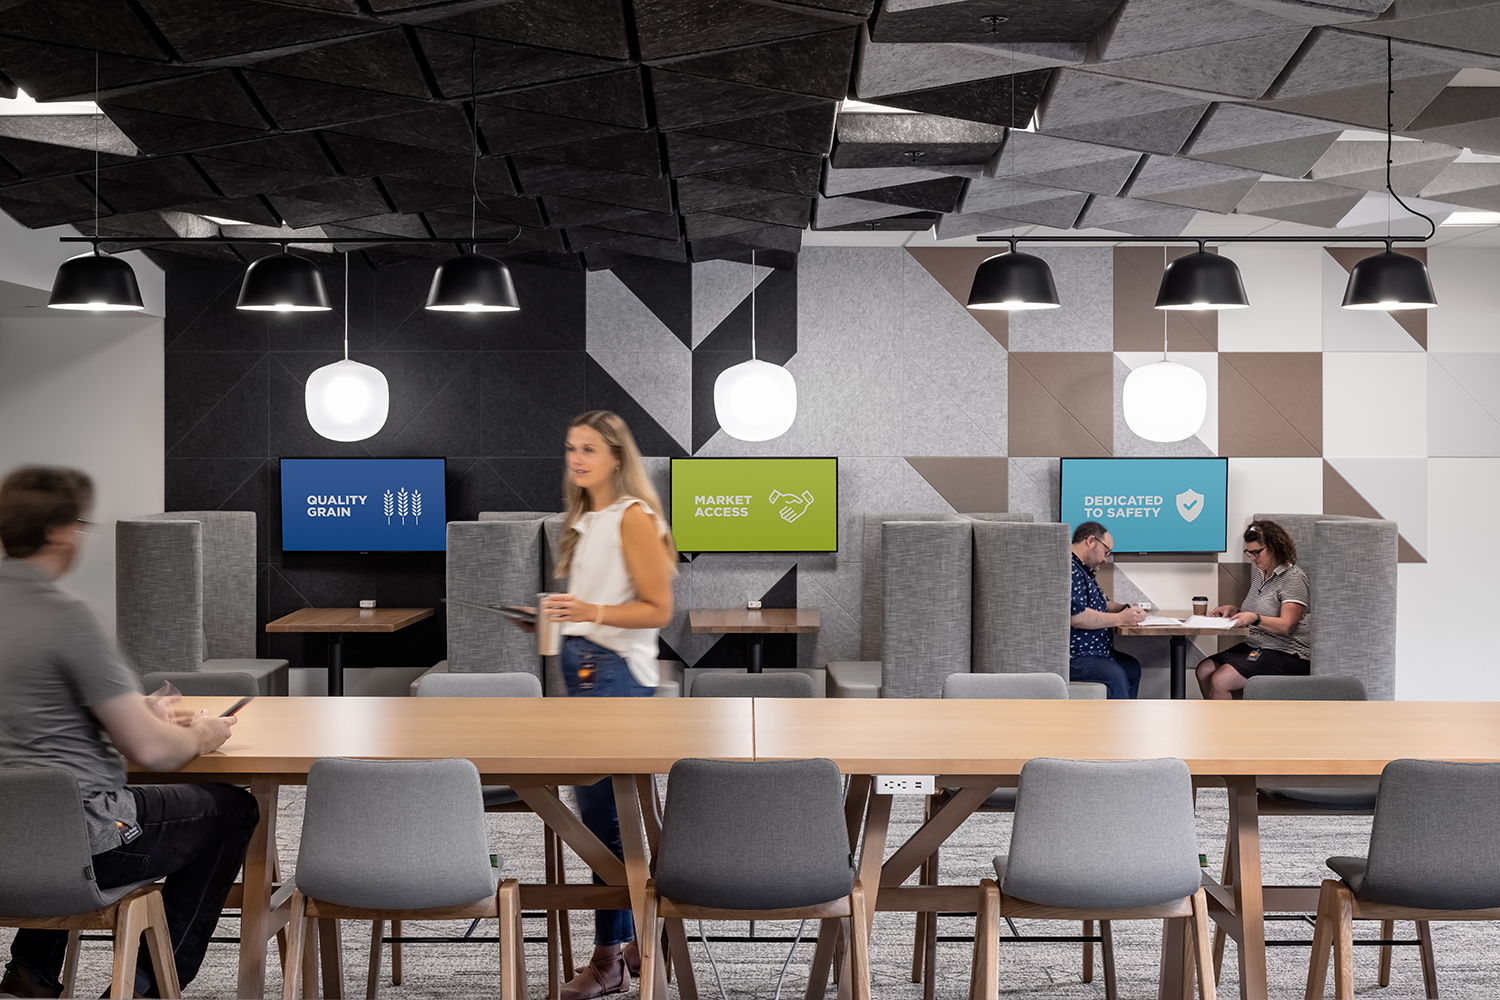 Detailed shot of the CHS work cafe with booth seating and accompanying technology.